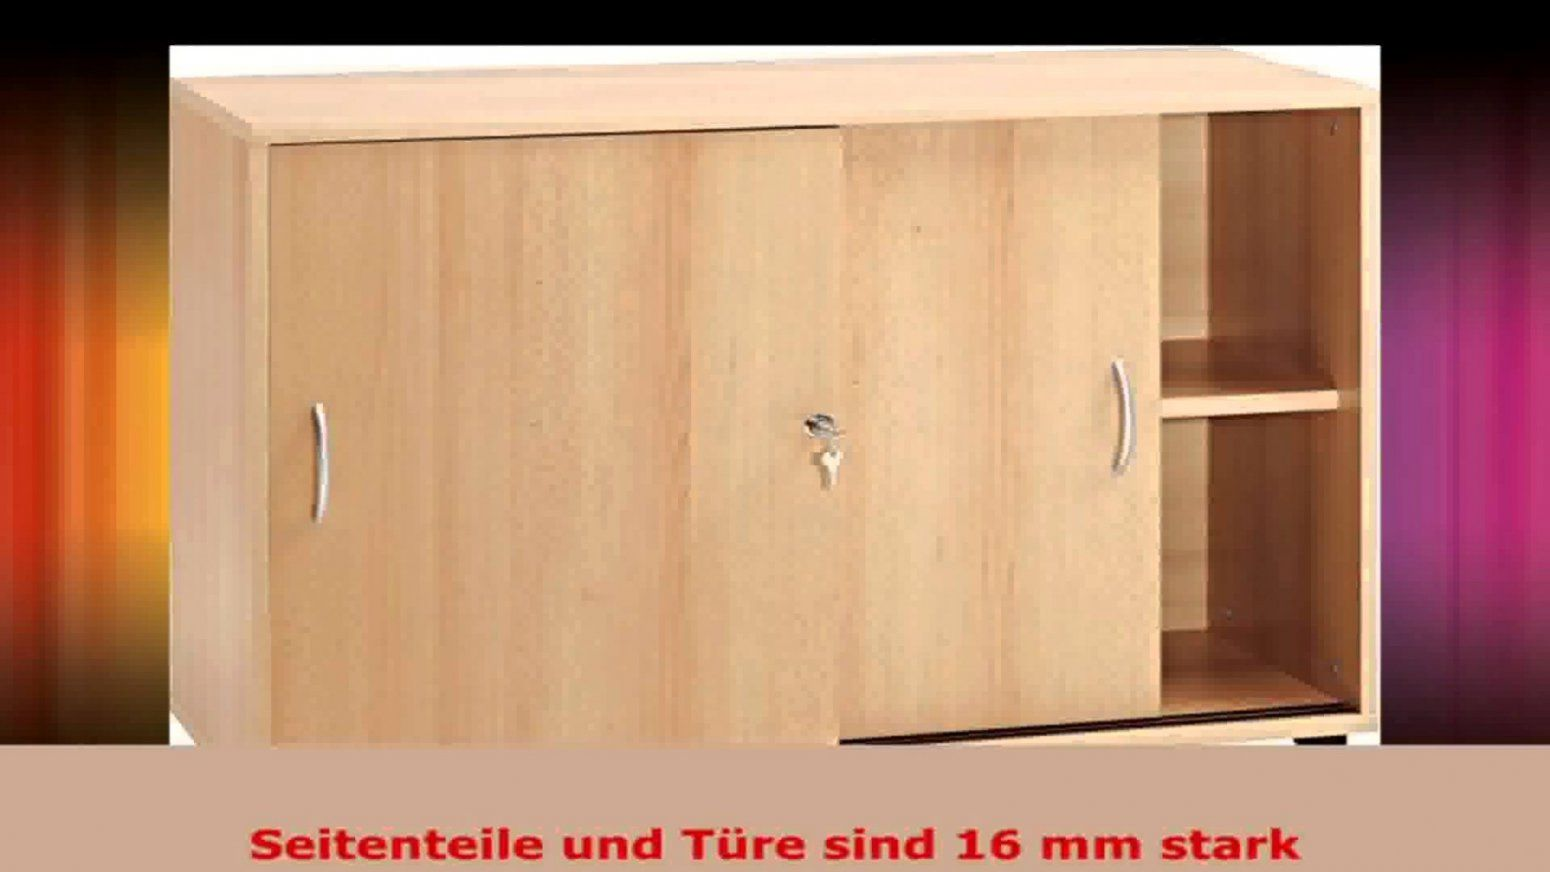 schrank bauen anleitung trendy schrank bauen with schrank bauen anleitung schiebetren selber. Black Bedroom Furniture Sets. Home Design Ideas